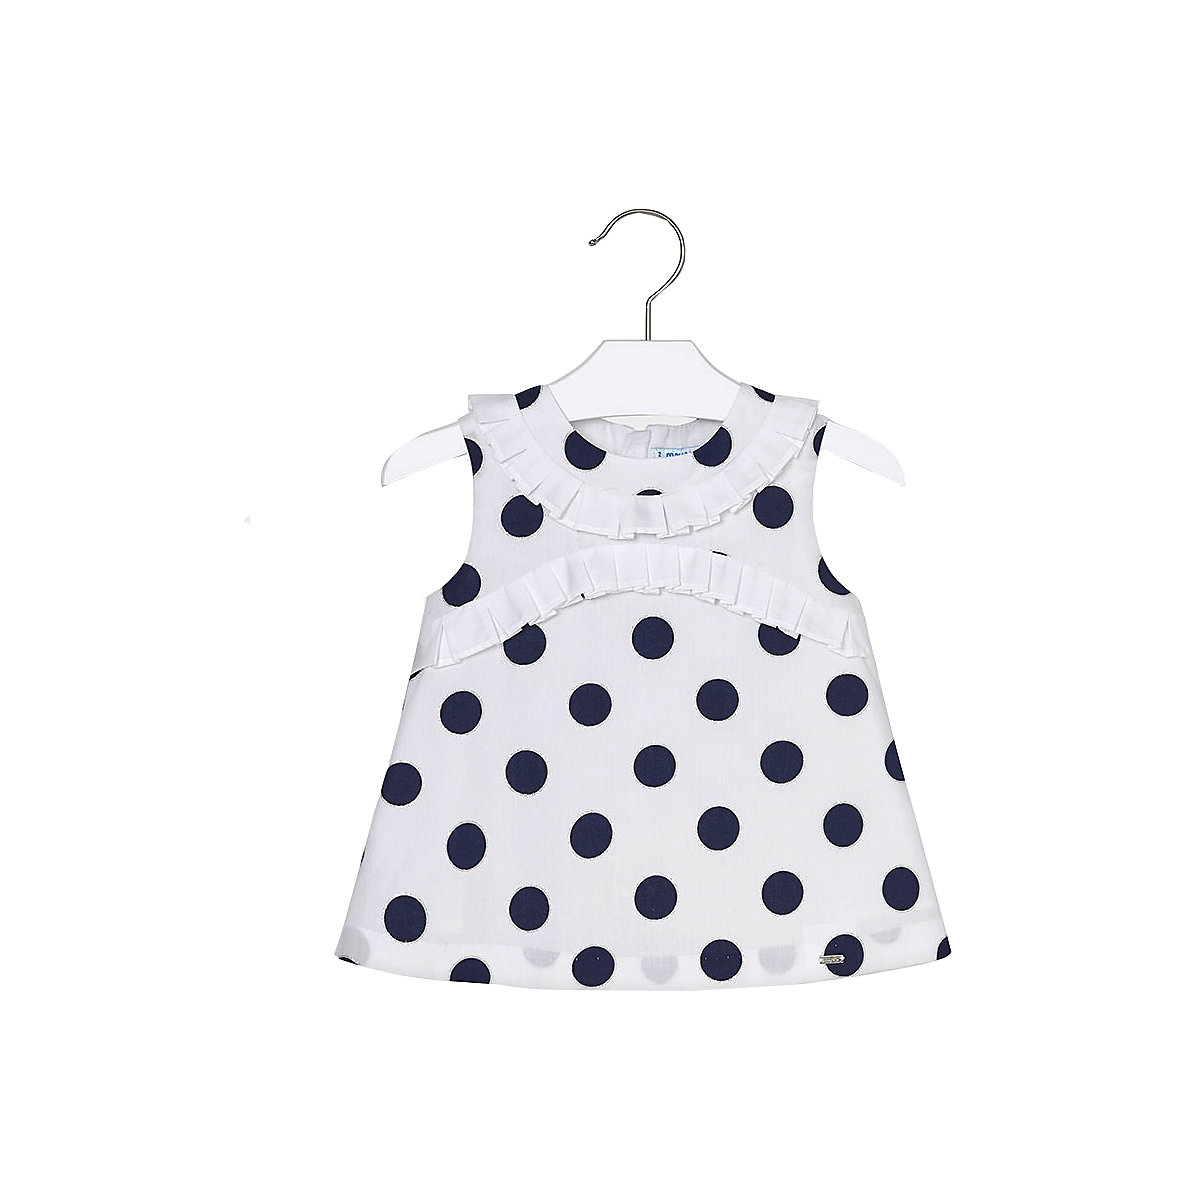 MAYORAL Blouses & Shirts 10691263 children clothing blouse for girls stylish butterfly print flounced blouse shorts twinset for girls